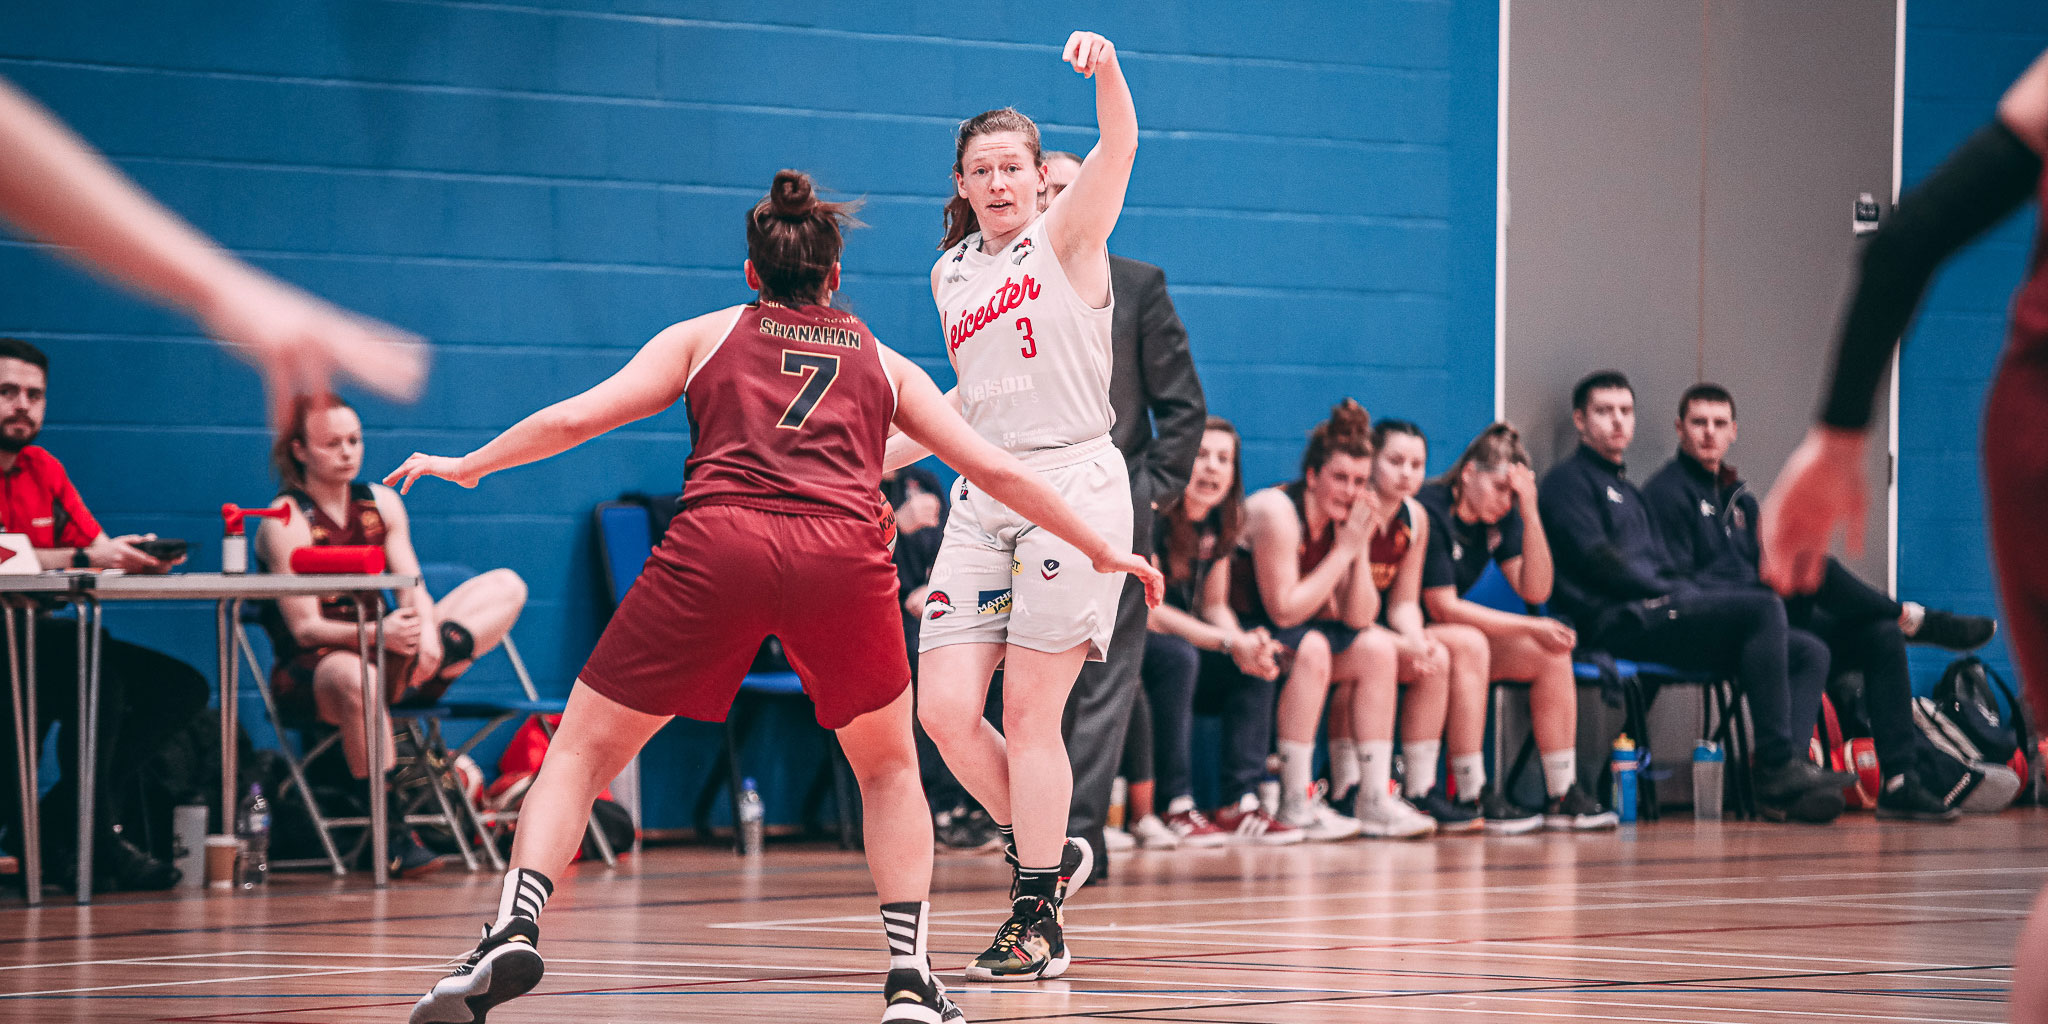 Report: Riders Women bounce back with impressive win over Cardiff